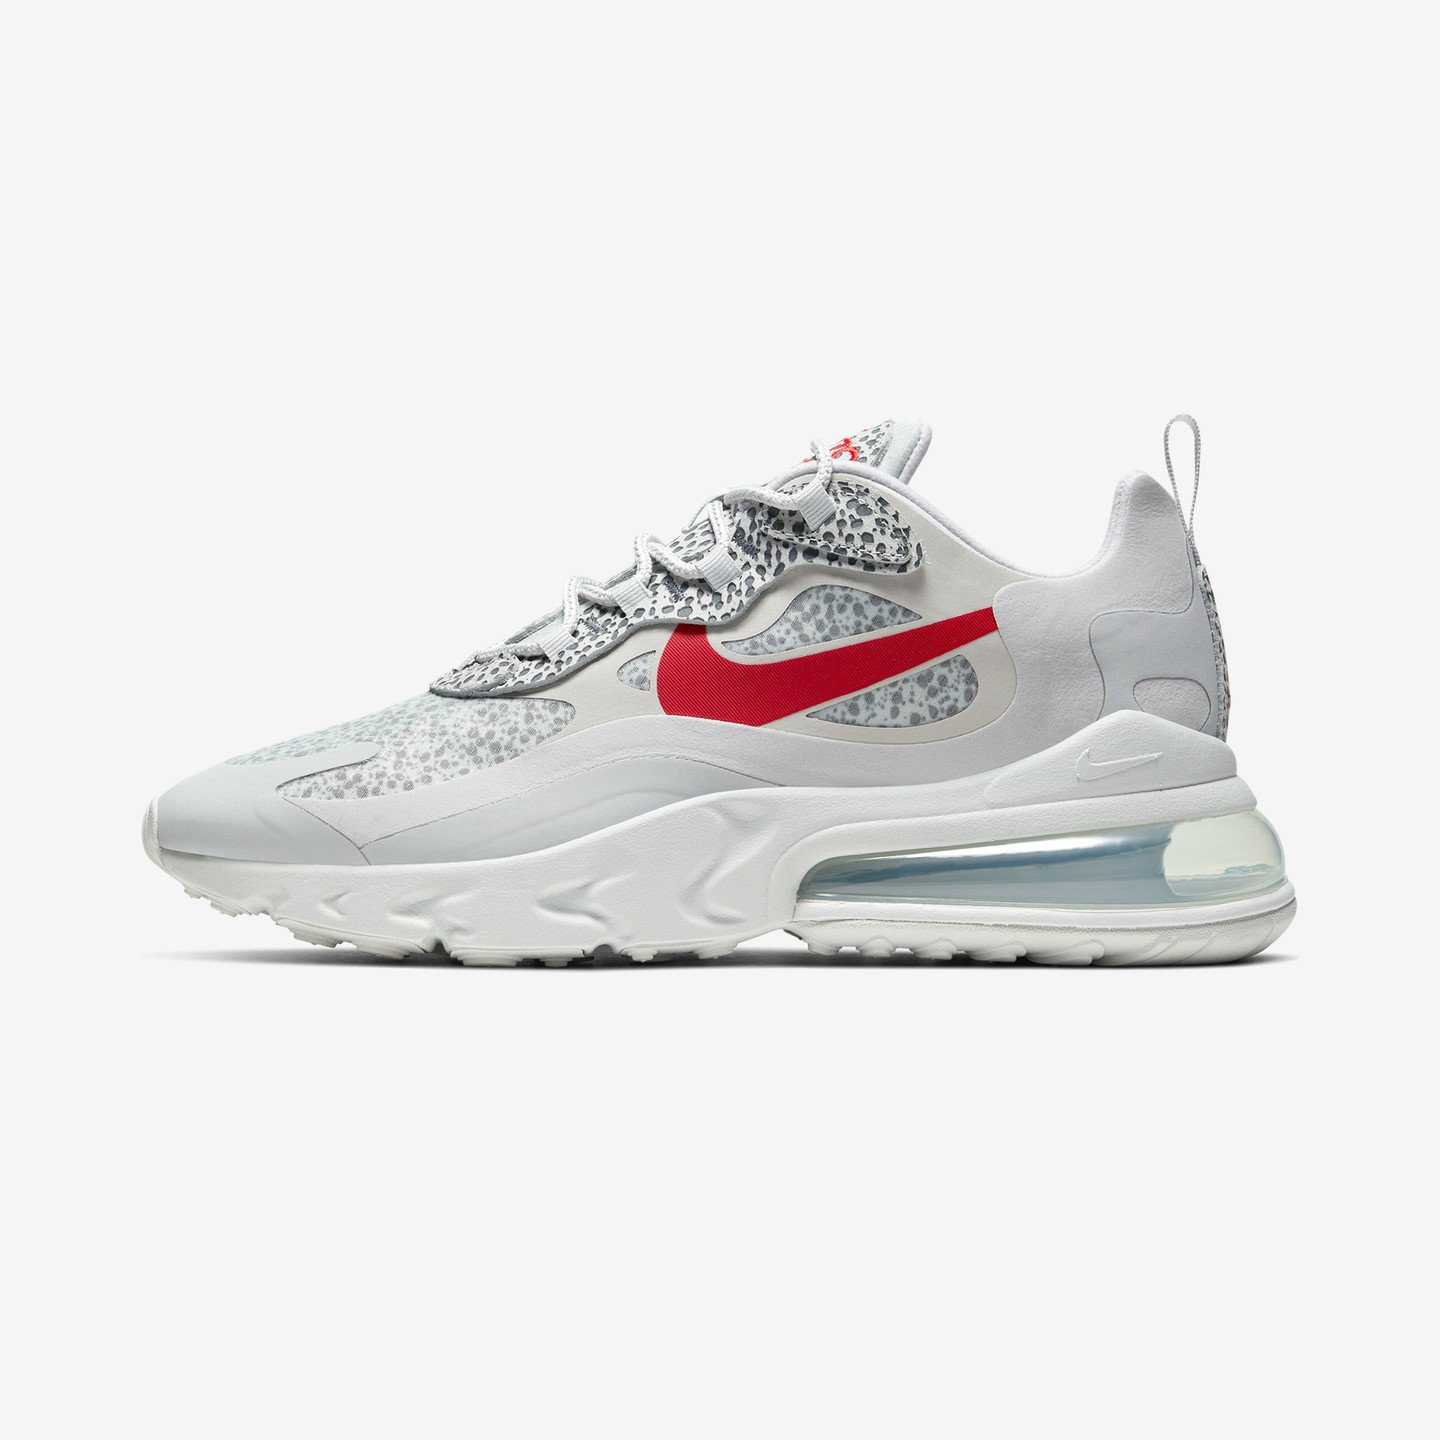 Nike Air Max 270 React 'Safari' Neutral Grey / Light Graphite/Platinum Tint / University Red CT2535-001